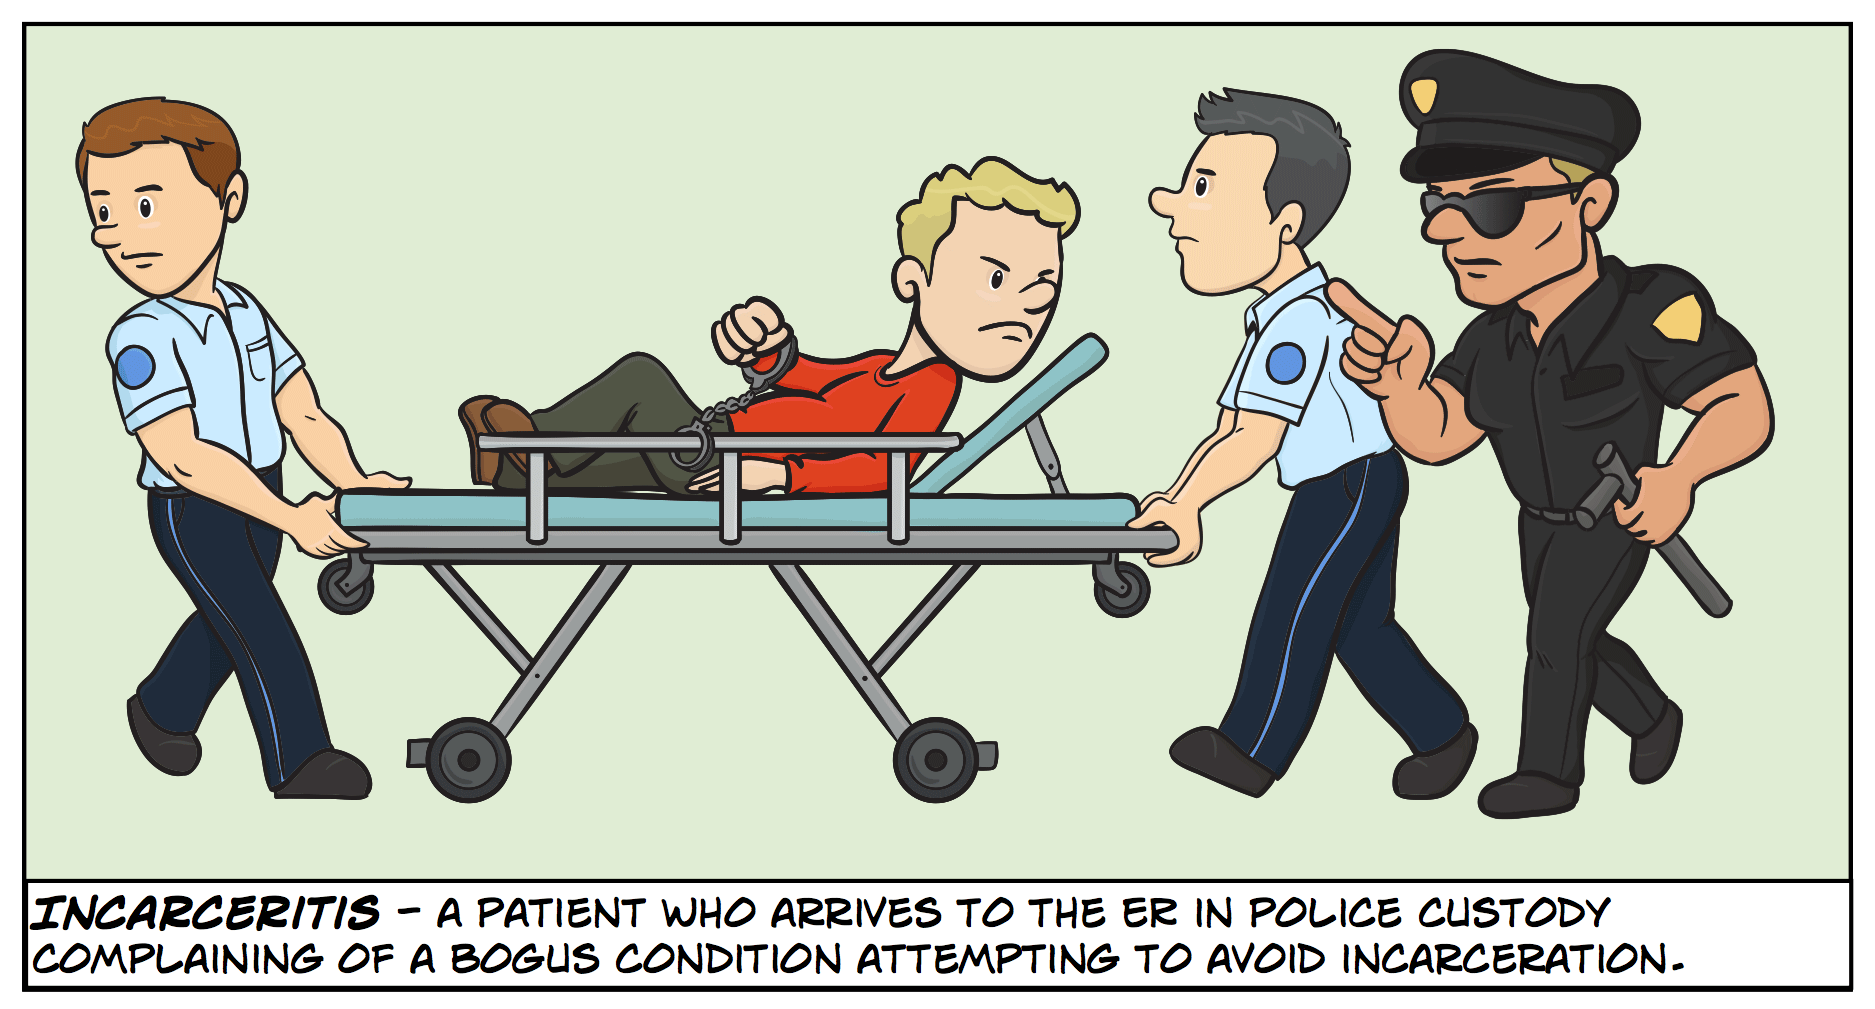 Incarceritis - a patient who arrives to the ER in police custody complaining of a bogus condition attempting to avoid incarceration.